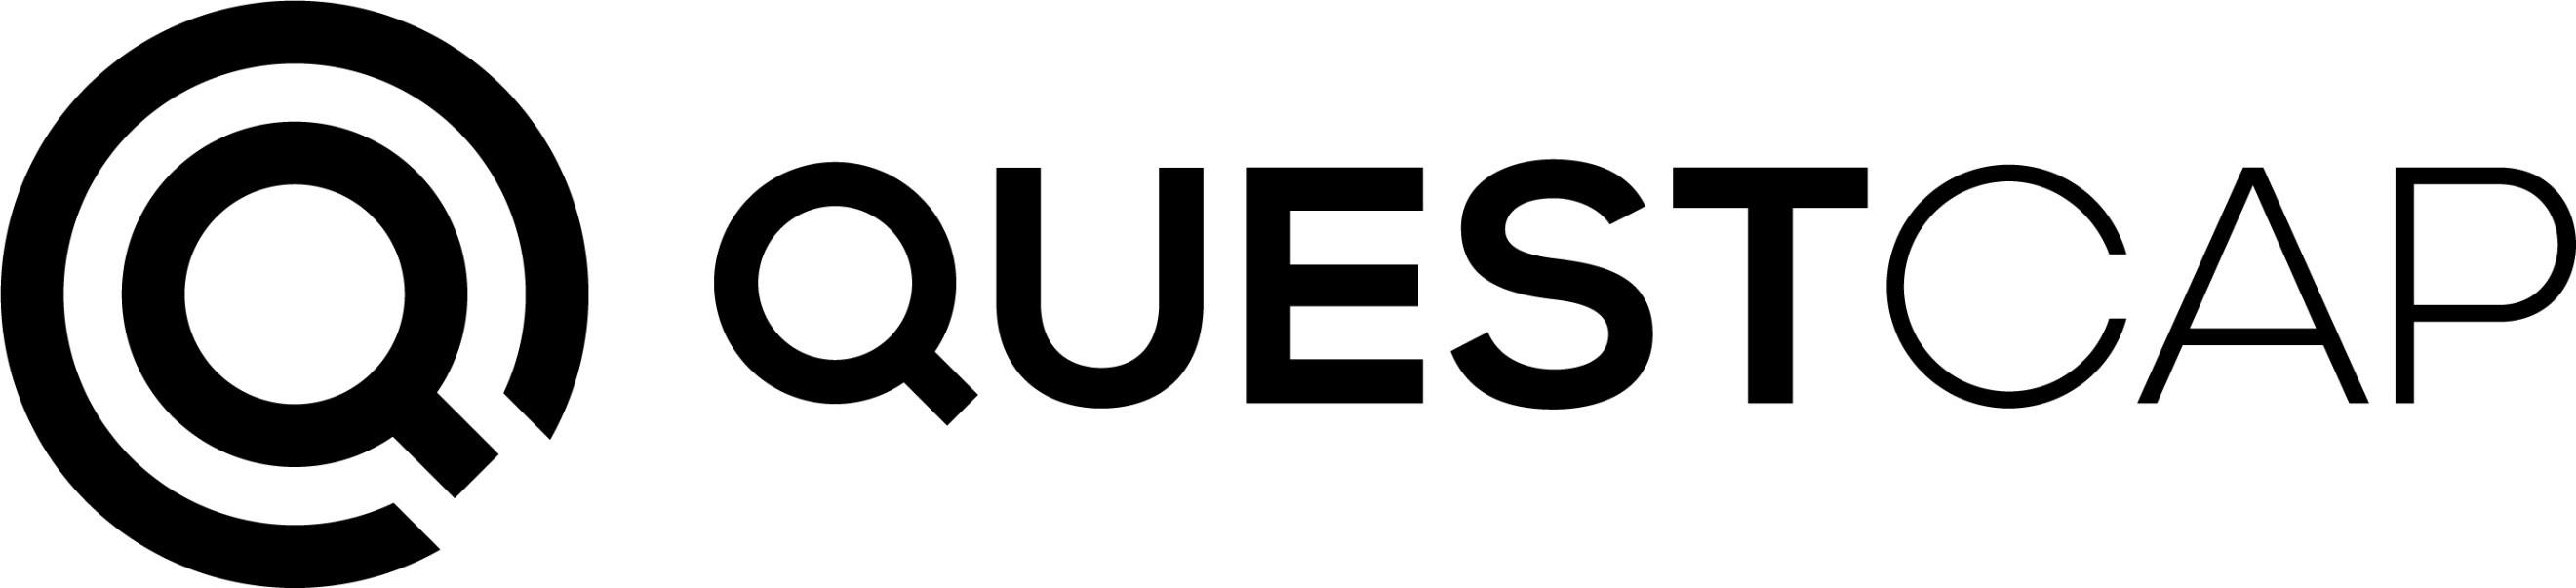 QuestCap Announces Planned Name Change to Medi-Volve Along With Transition to Single Purpose Medical Company